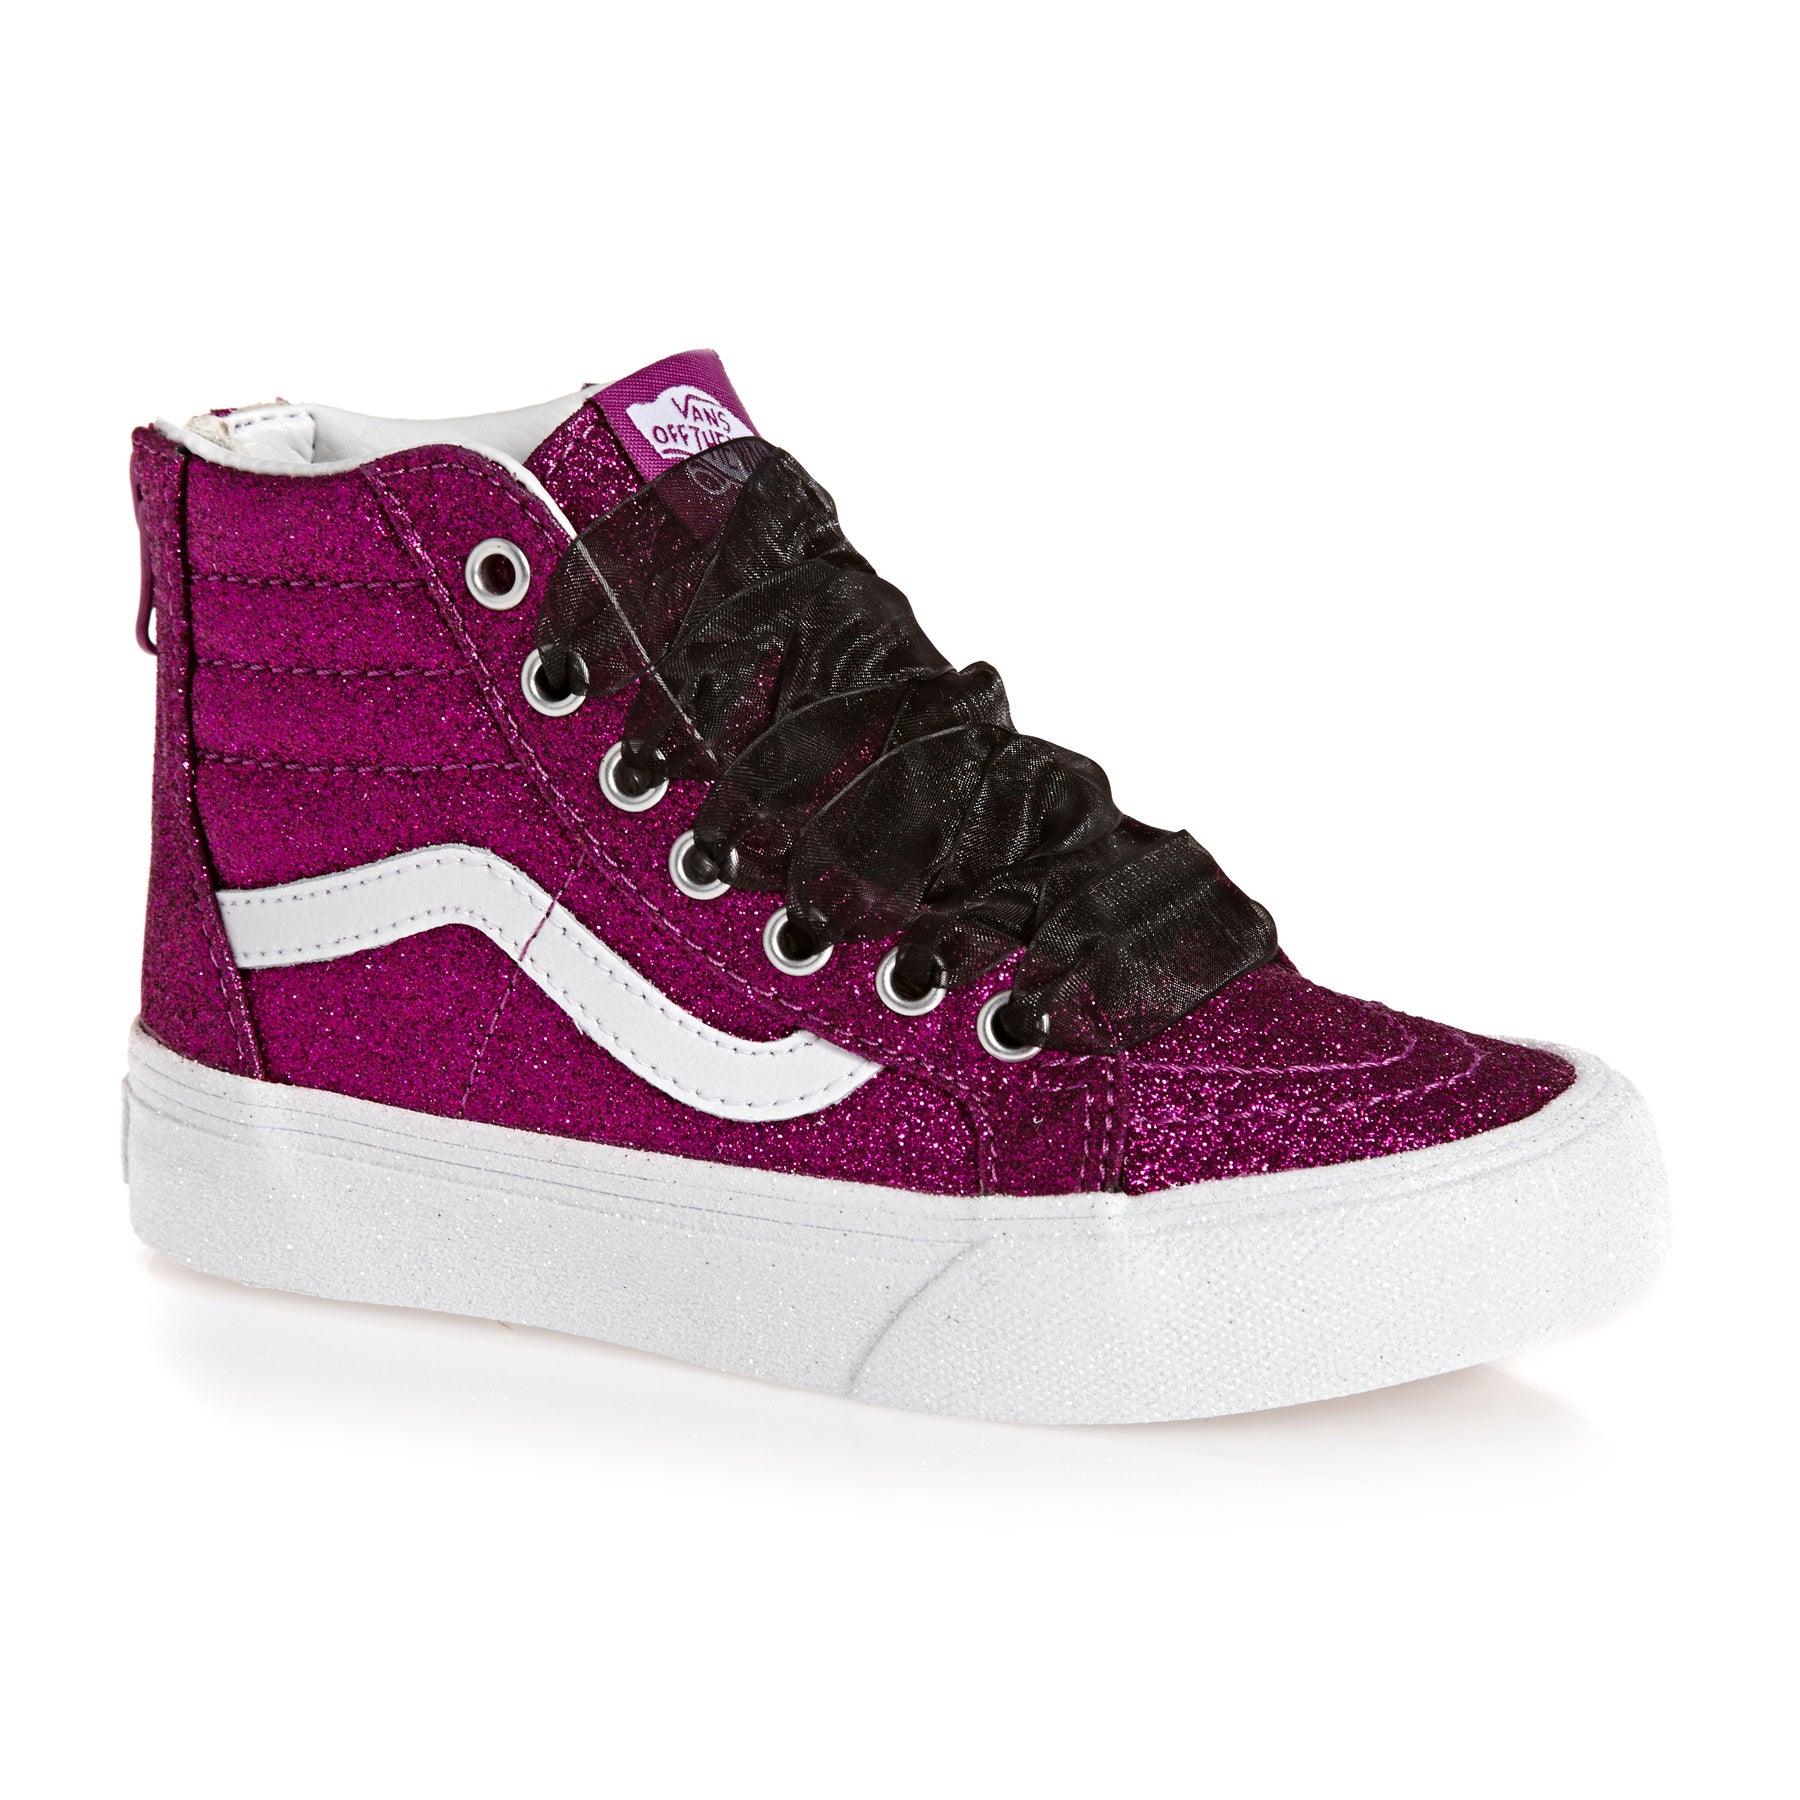 40a128b144 Vans Sk8 Hi Zip Kids Shoes available from Surfdome